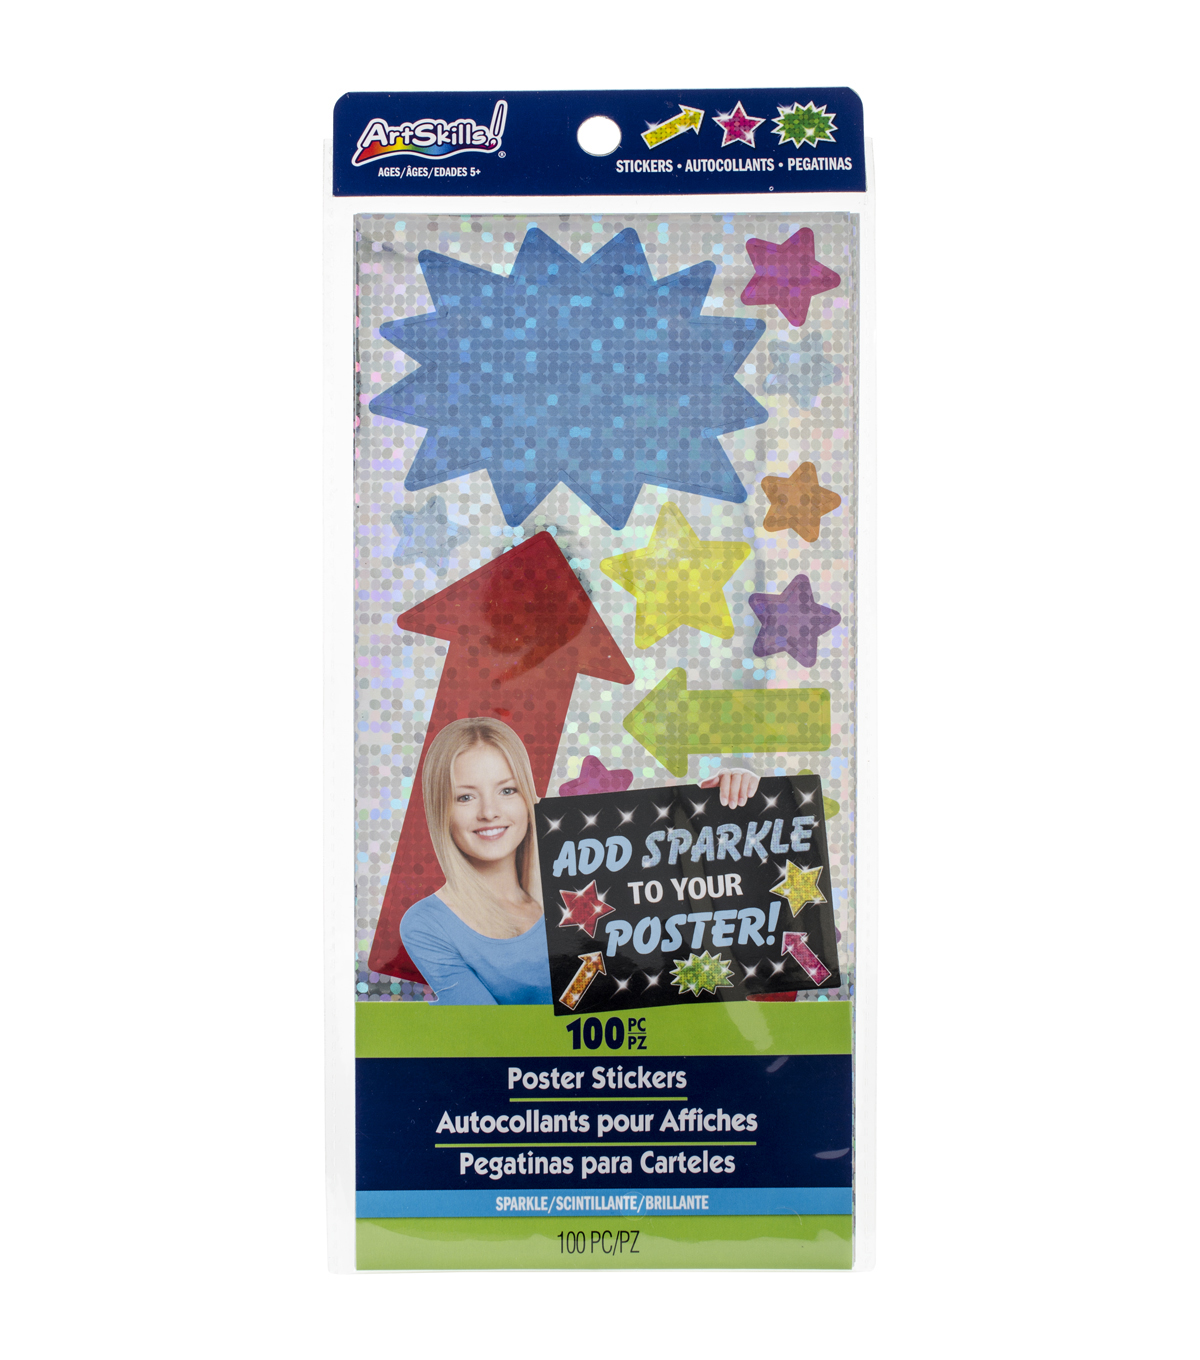 Artskills® 100pcs Sparkle Poster Stickers